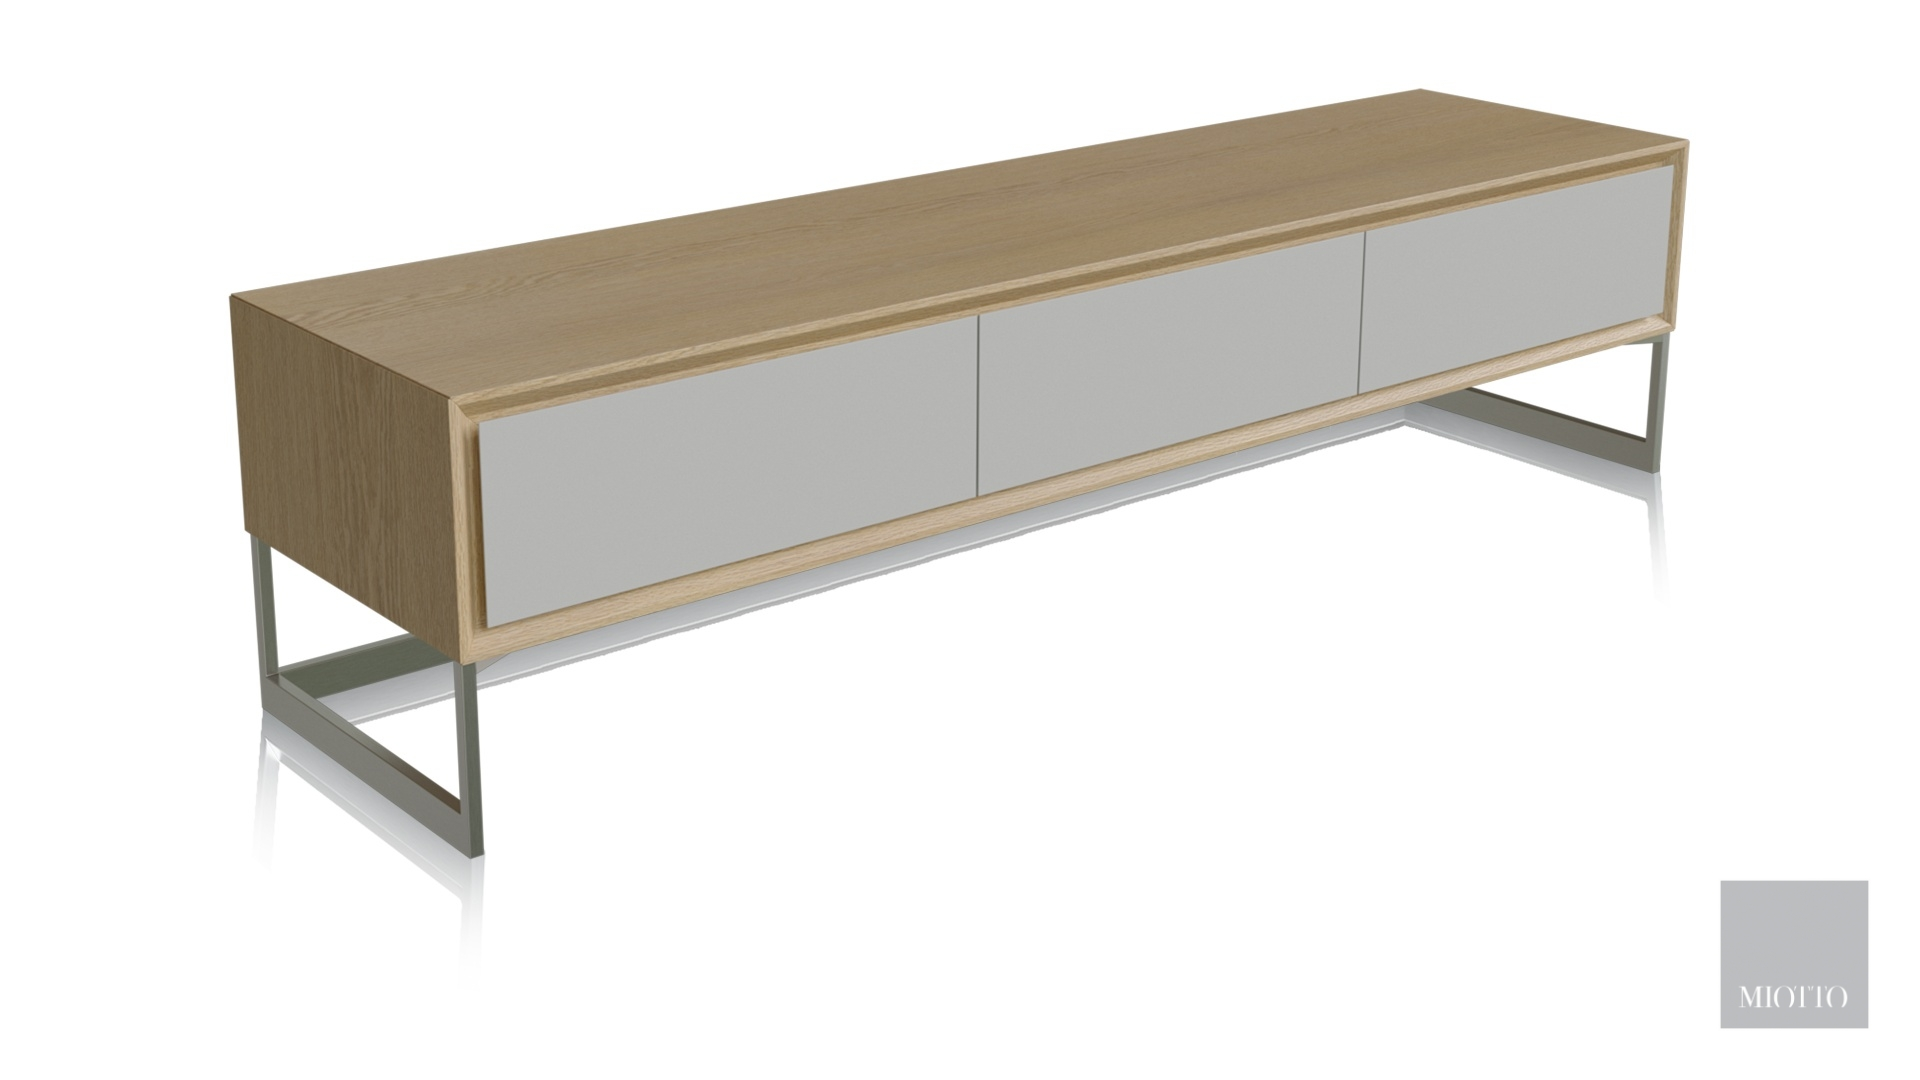 miotto_Ligeia TV washed oak unit miotto living furniture